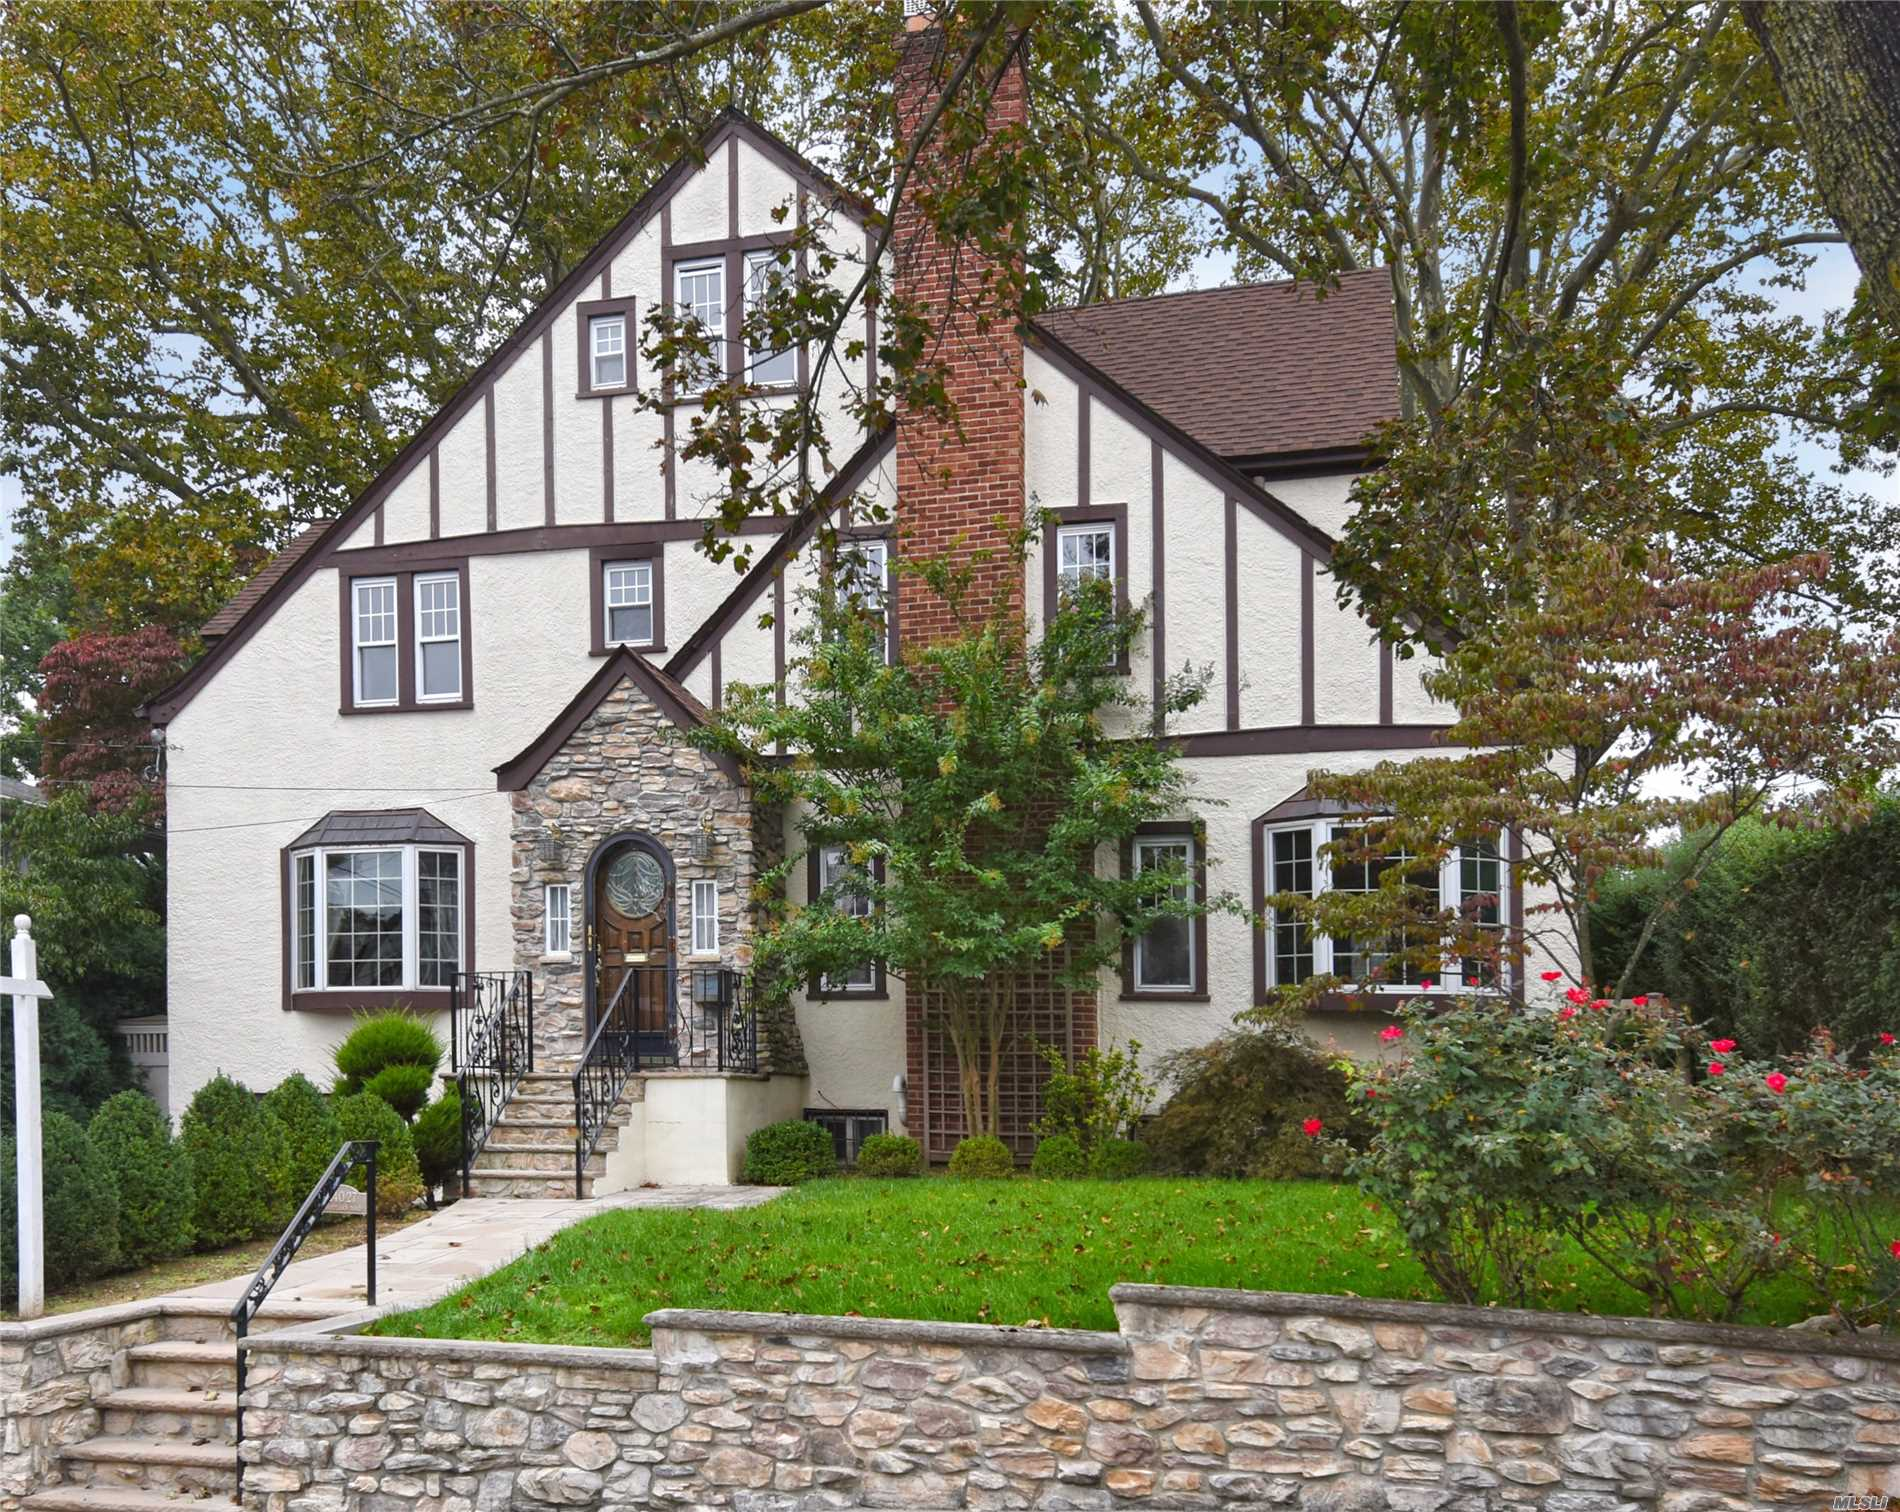 Superbly Renovated Tudor In The Heart Of Douglaston Park Featuring Four Bedrooms, Gorgeous Finishes, And A 600 Square Foot Great Room! Close To Shopping And Major Transportation. Easy Access To Flushing, And Lirr Only 27 Mins To Manhattan's Penn Station!